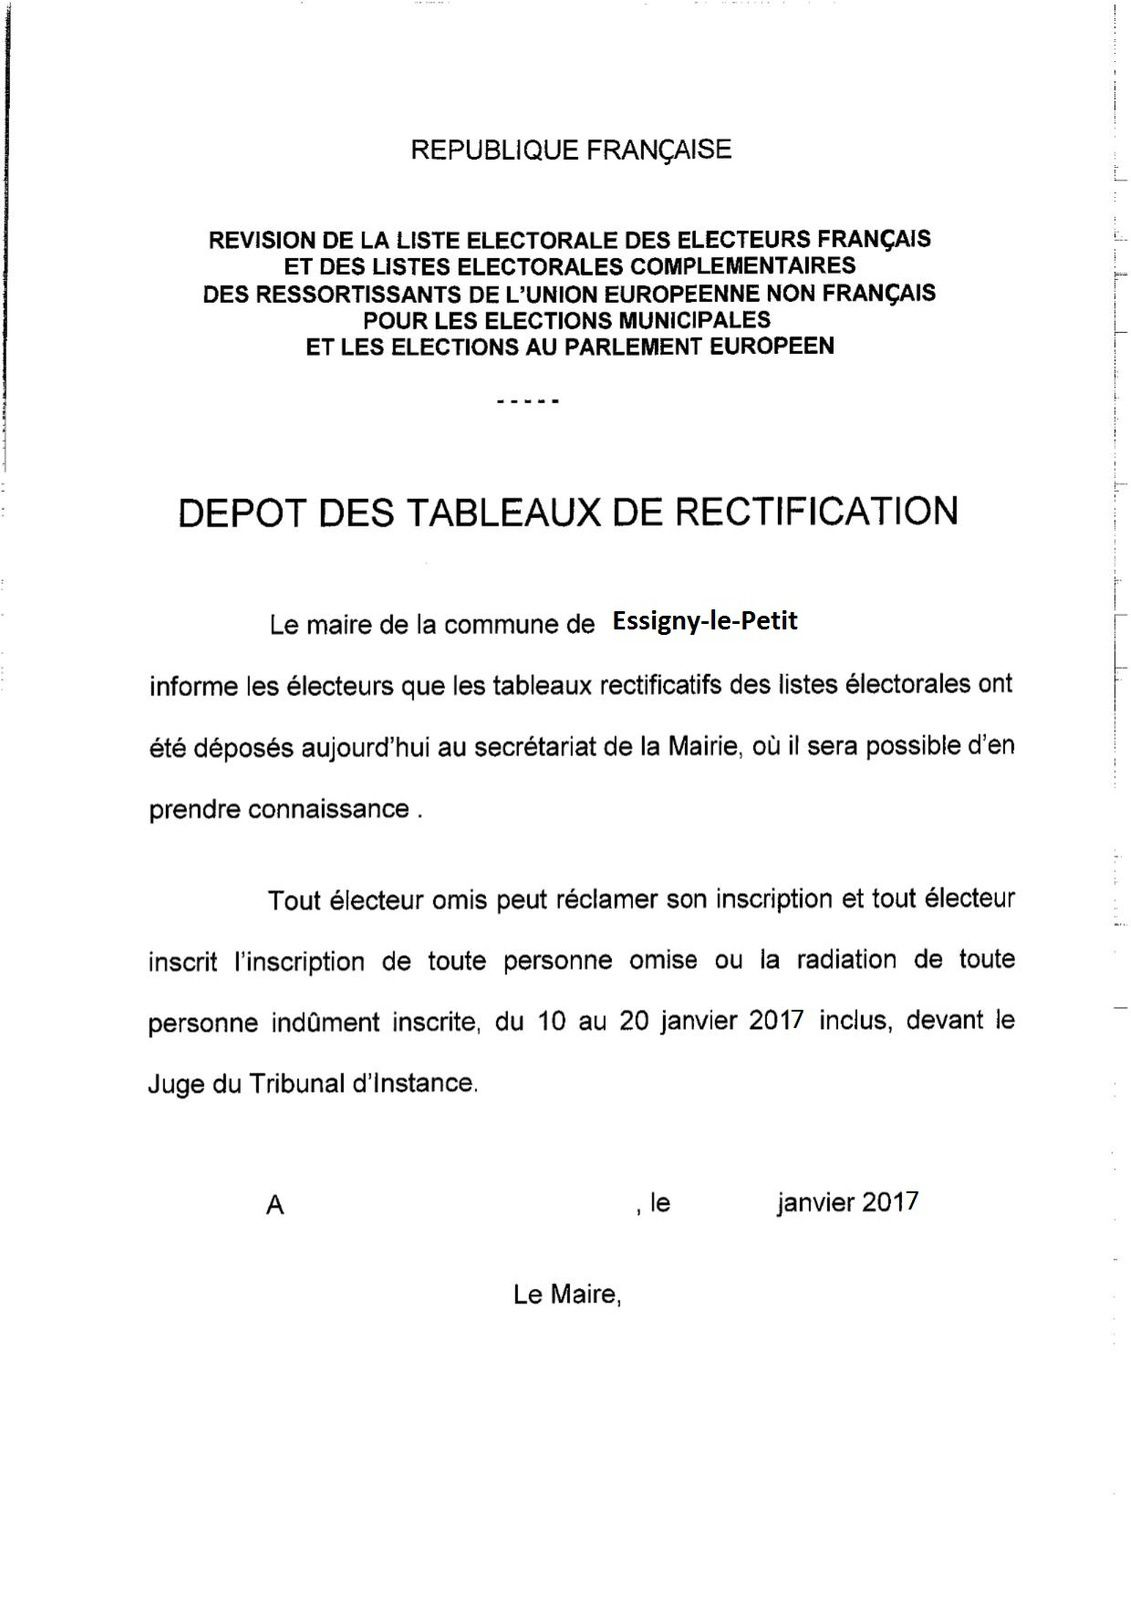 Modèle du document